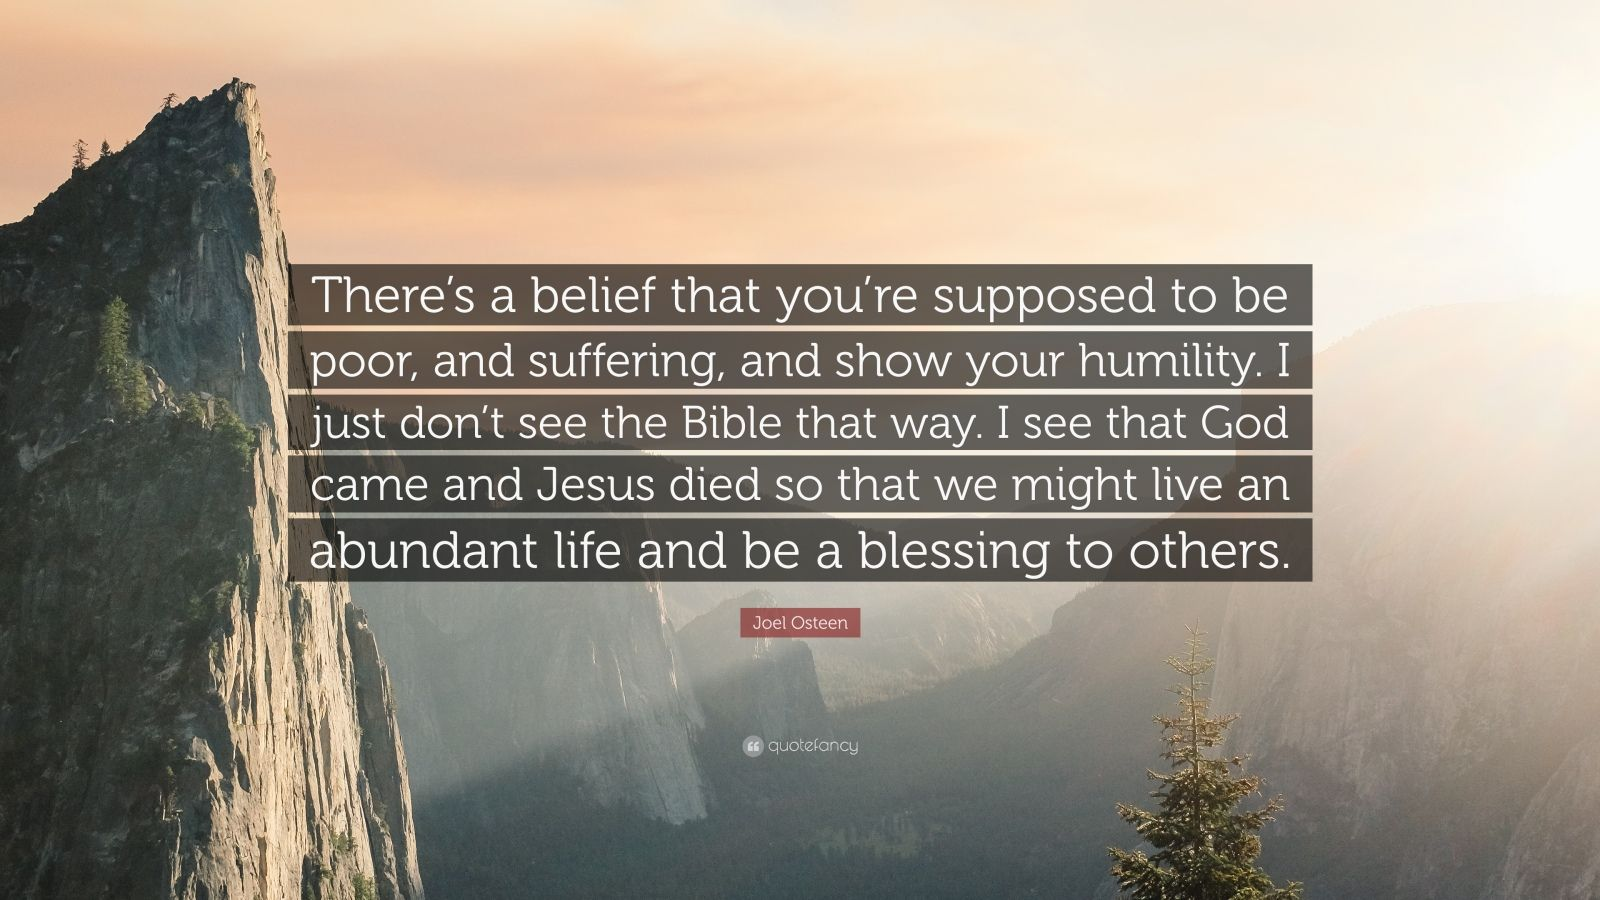 """Joel Osteen Quote: """"There's a belief that you're supposed to be poor, and suffering, and show your humility. I just don't see the Bible that way. I see that God came and Jesus died so that we might live an abundant life and be a blessing to others."""""""